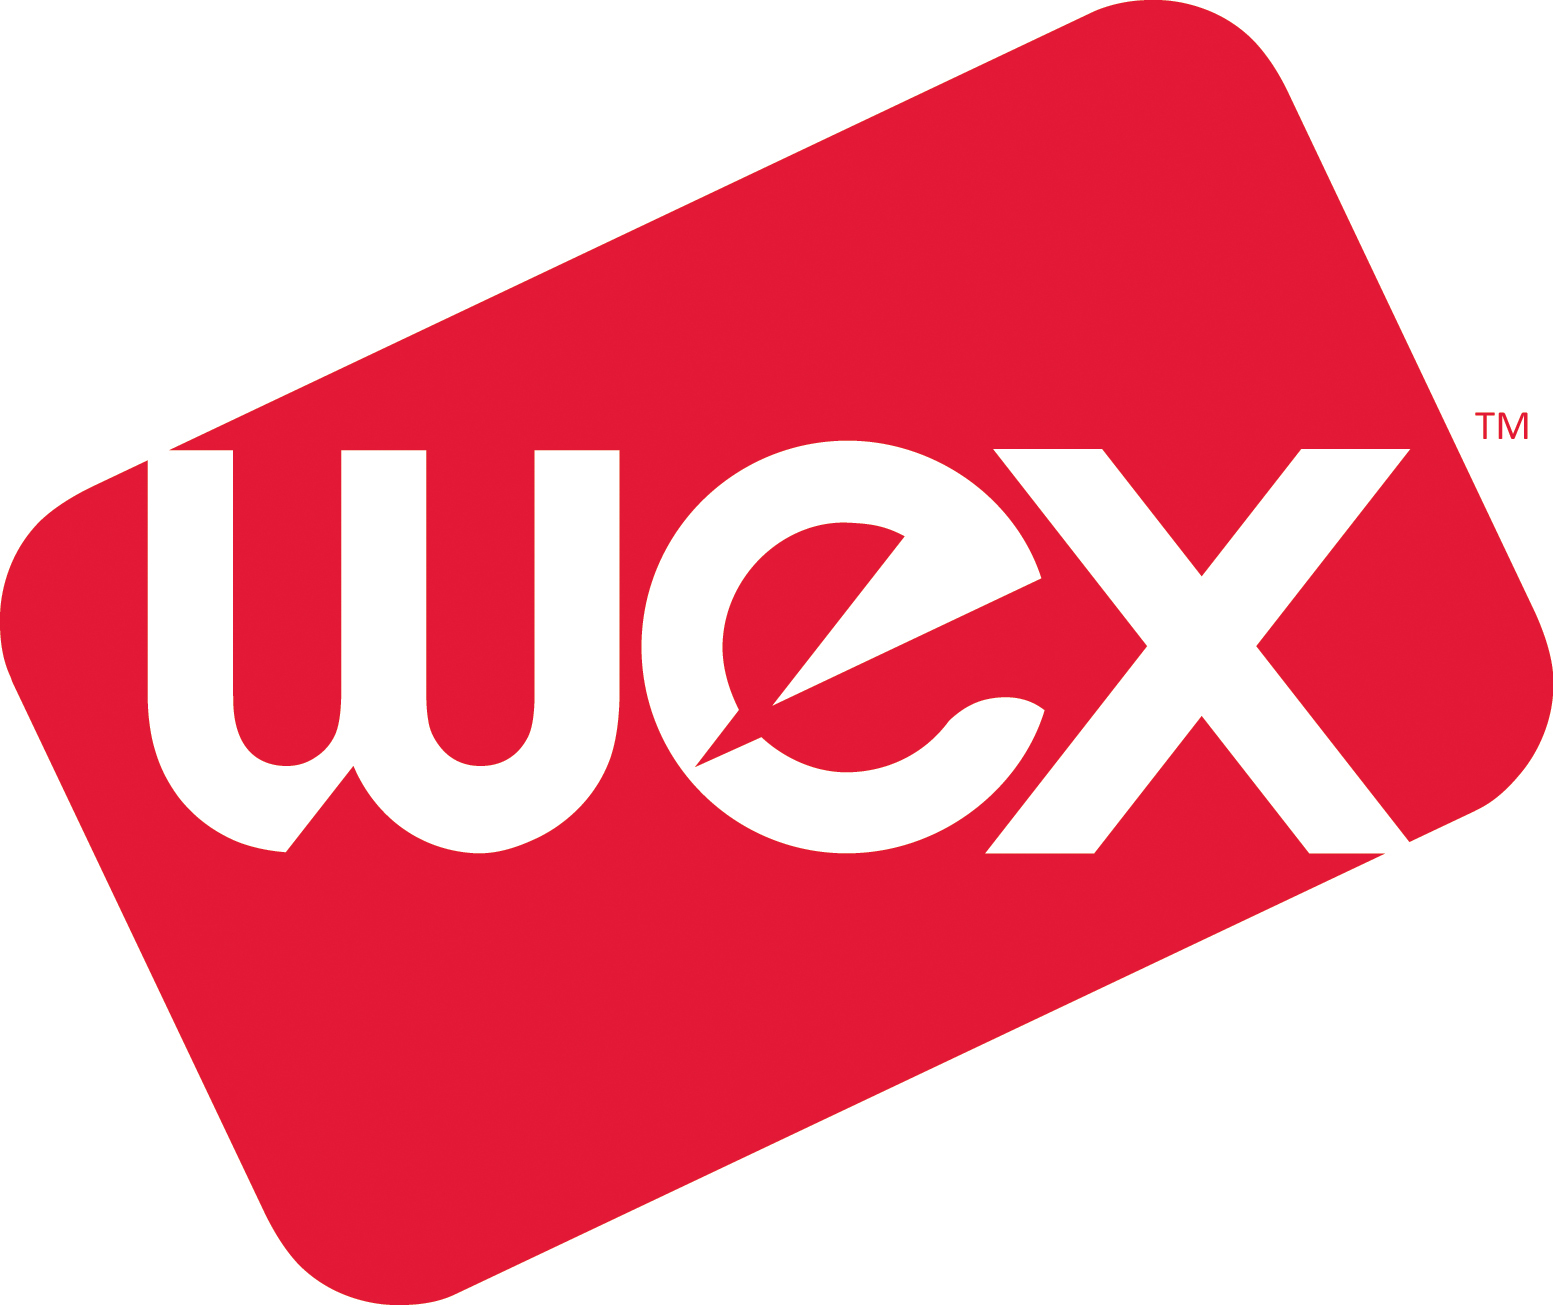 Wex inc and quiktrip build on 23 year track record of fleet card wex inc and quiktrip build on 23 year track record of fleet card success with a five year contract extension business wire biocorpaavc Choice Image